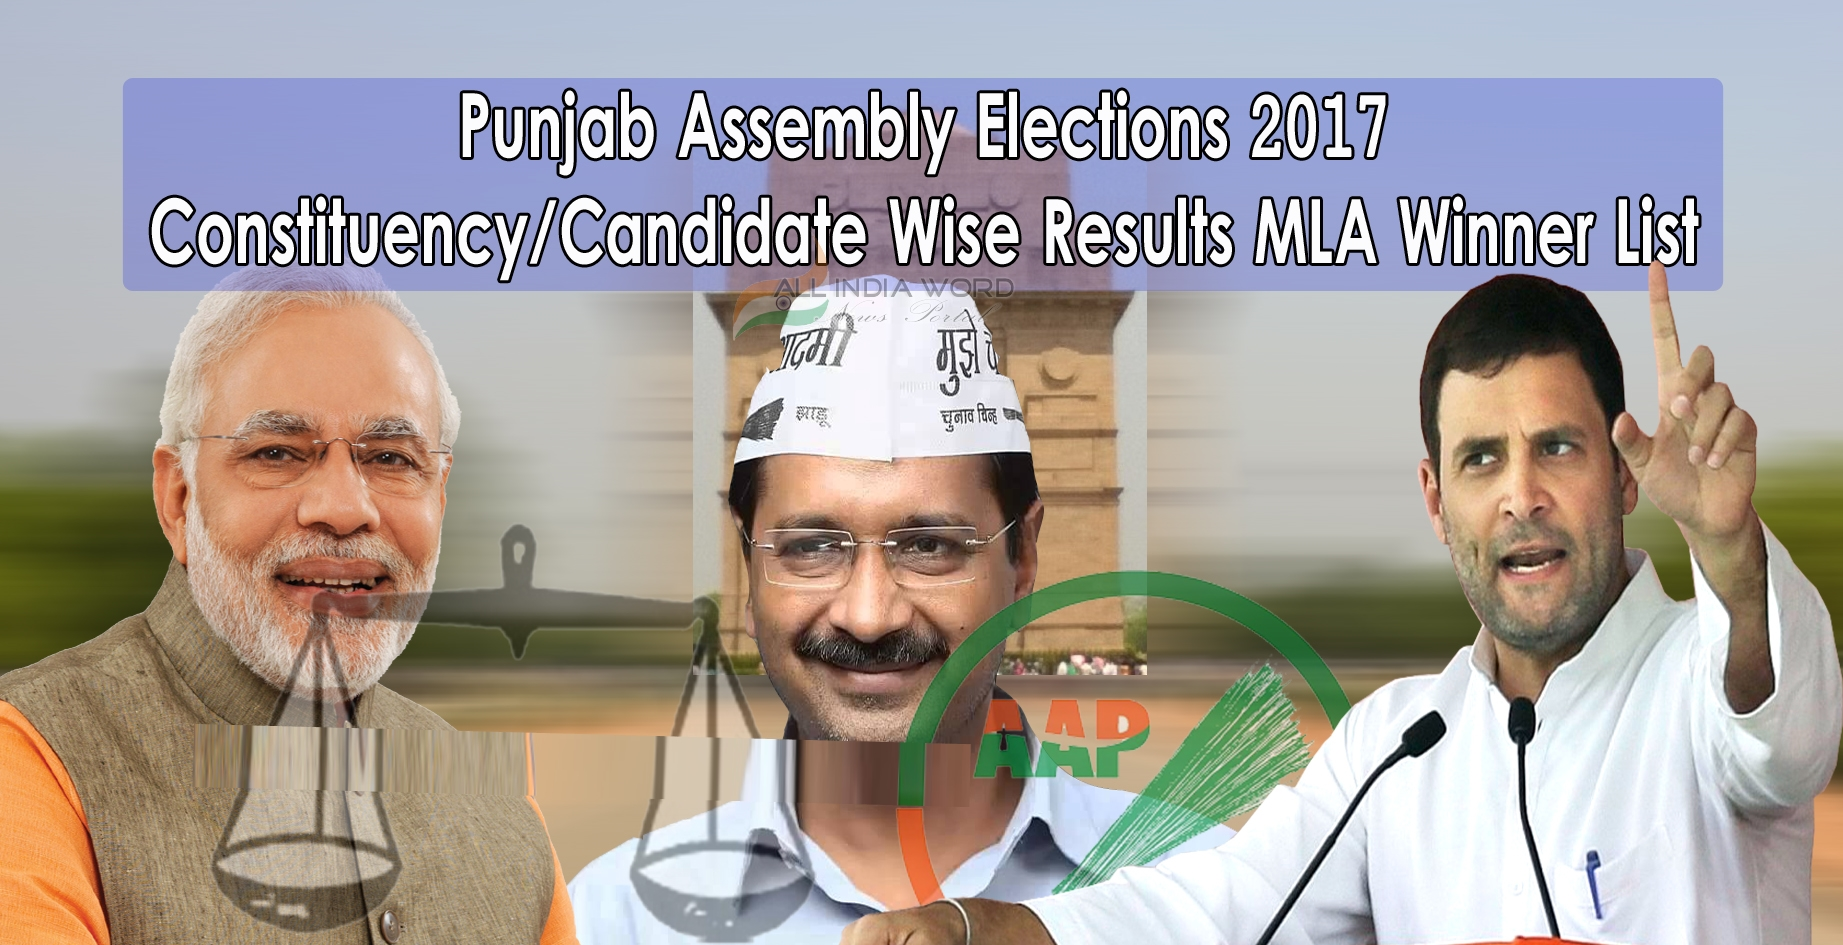 Punjab-Assembly-Elections-2017-Constituency-Candidate-Wise-Results-MLA-Winner-List-List